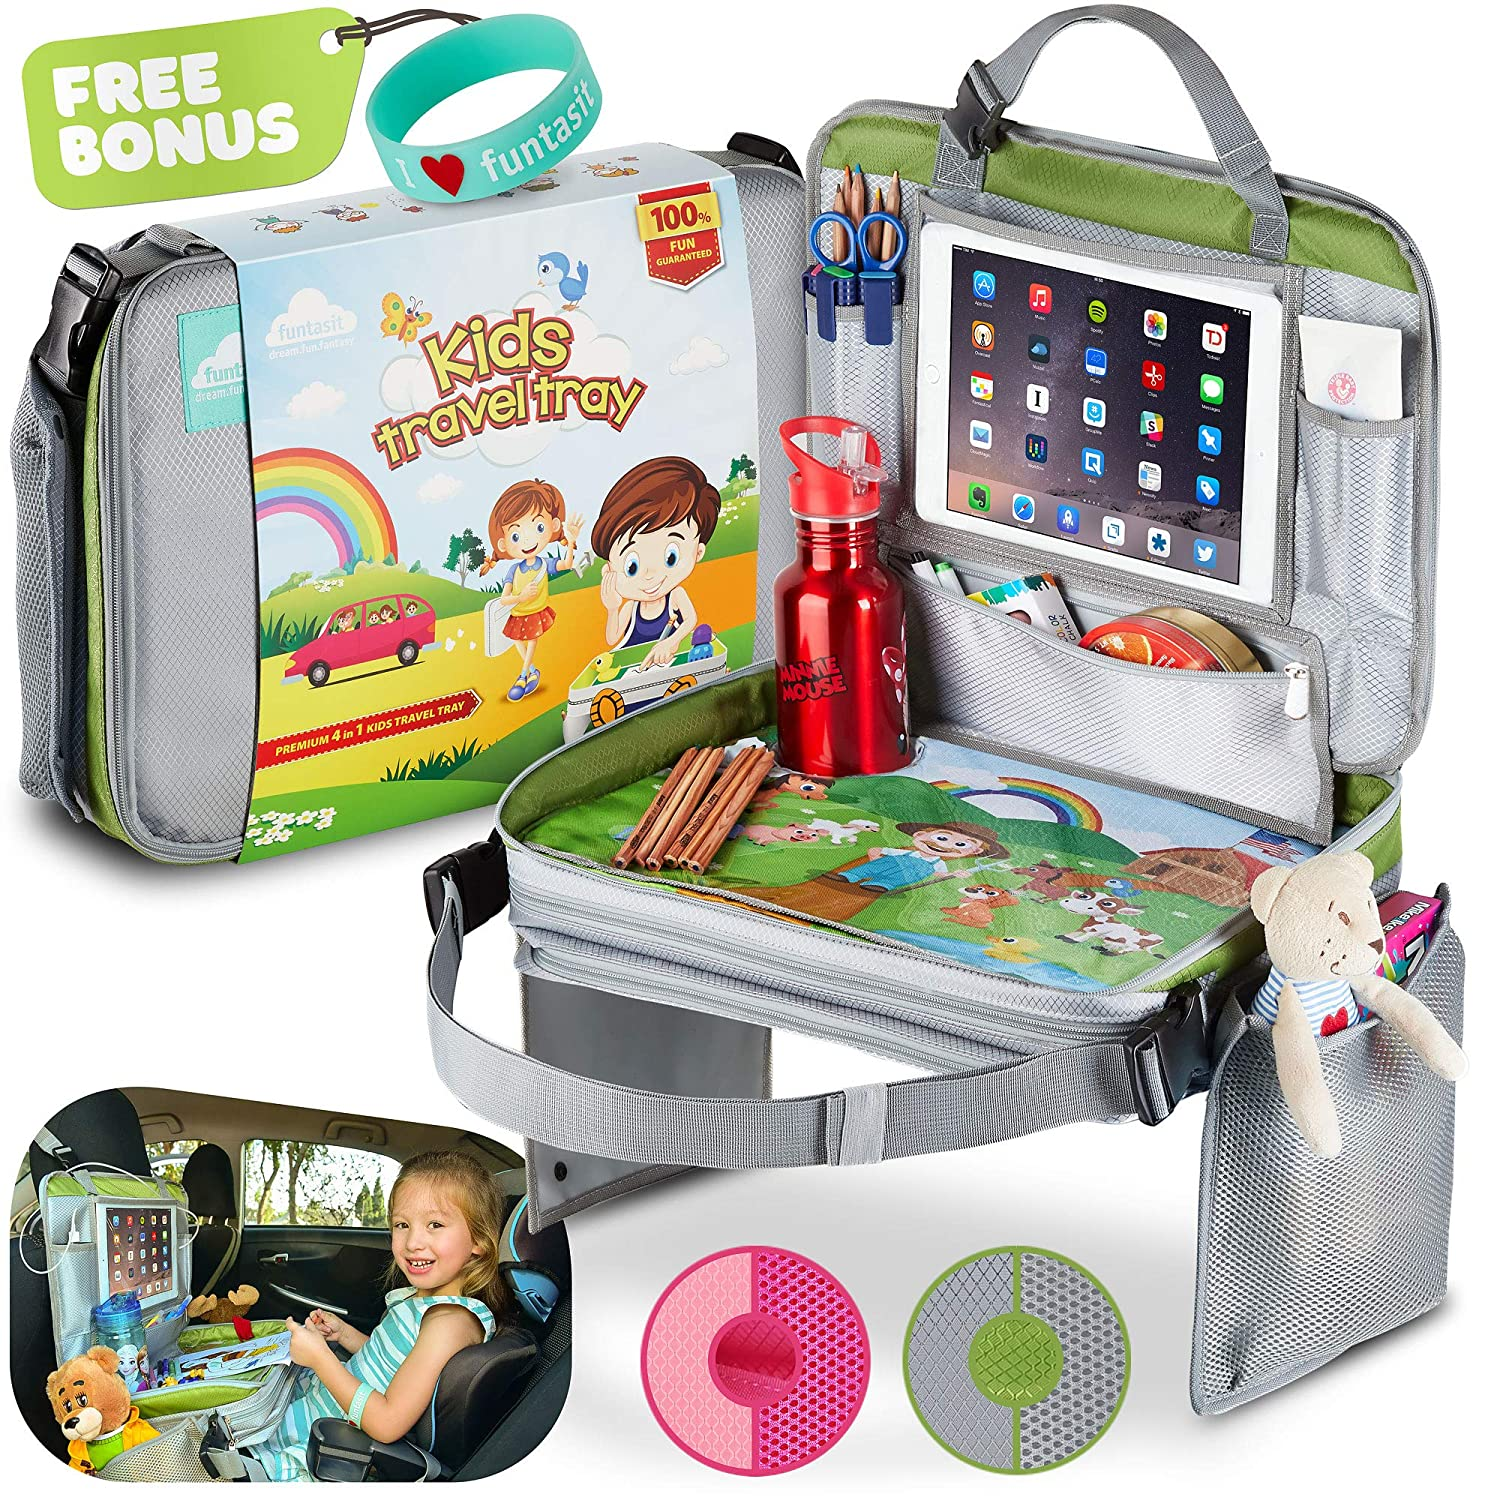 funtasit Kids Travel Tray All-in-One Carry Bag